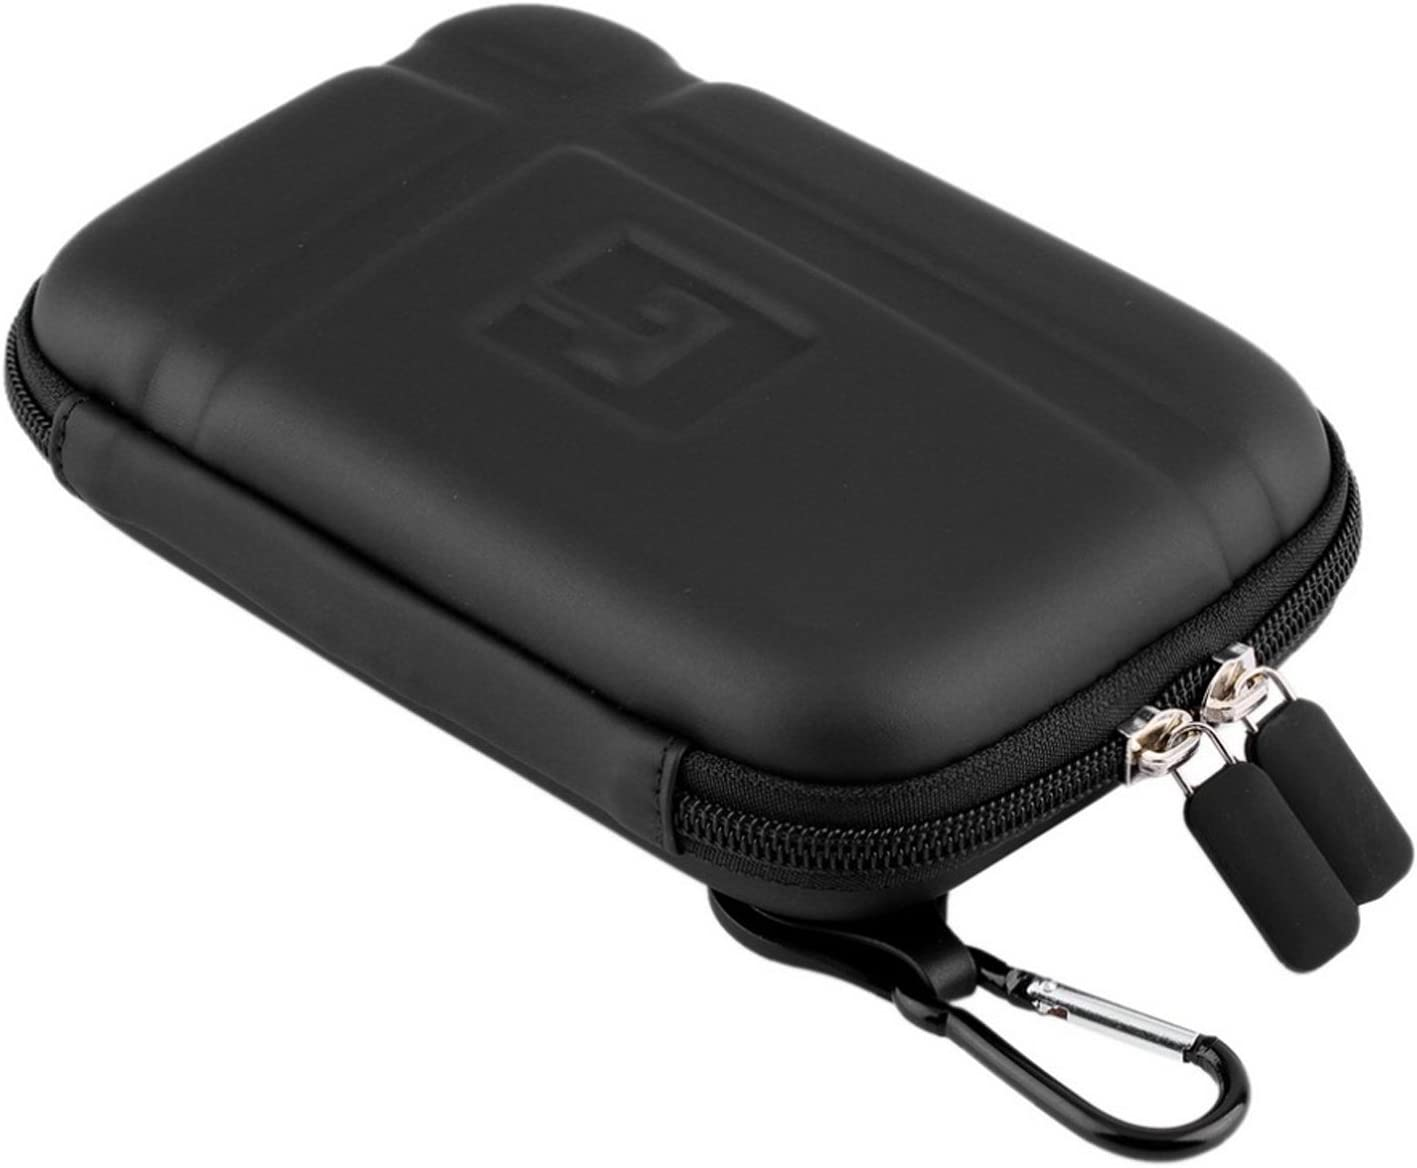 Teaeshop 5 Inch GPS Case Hard Carrying Case Travel Protective Bag GPS Protective Cover Zipper Pouch for 5 5.2 Tomtom Garmin Nuvi Magellan RoadMate Tomtom GPS Devices Black